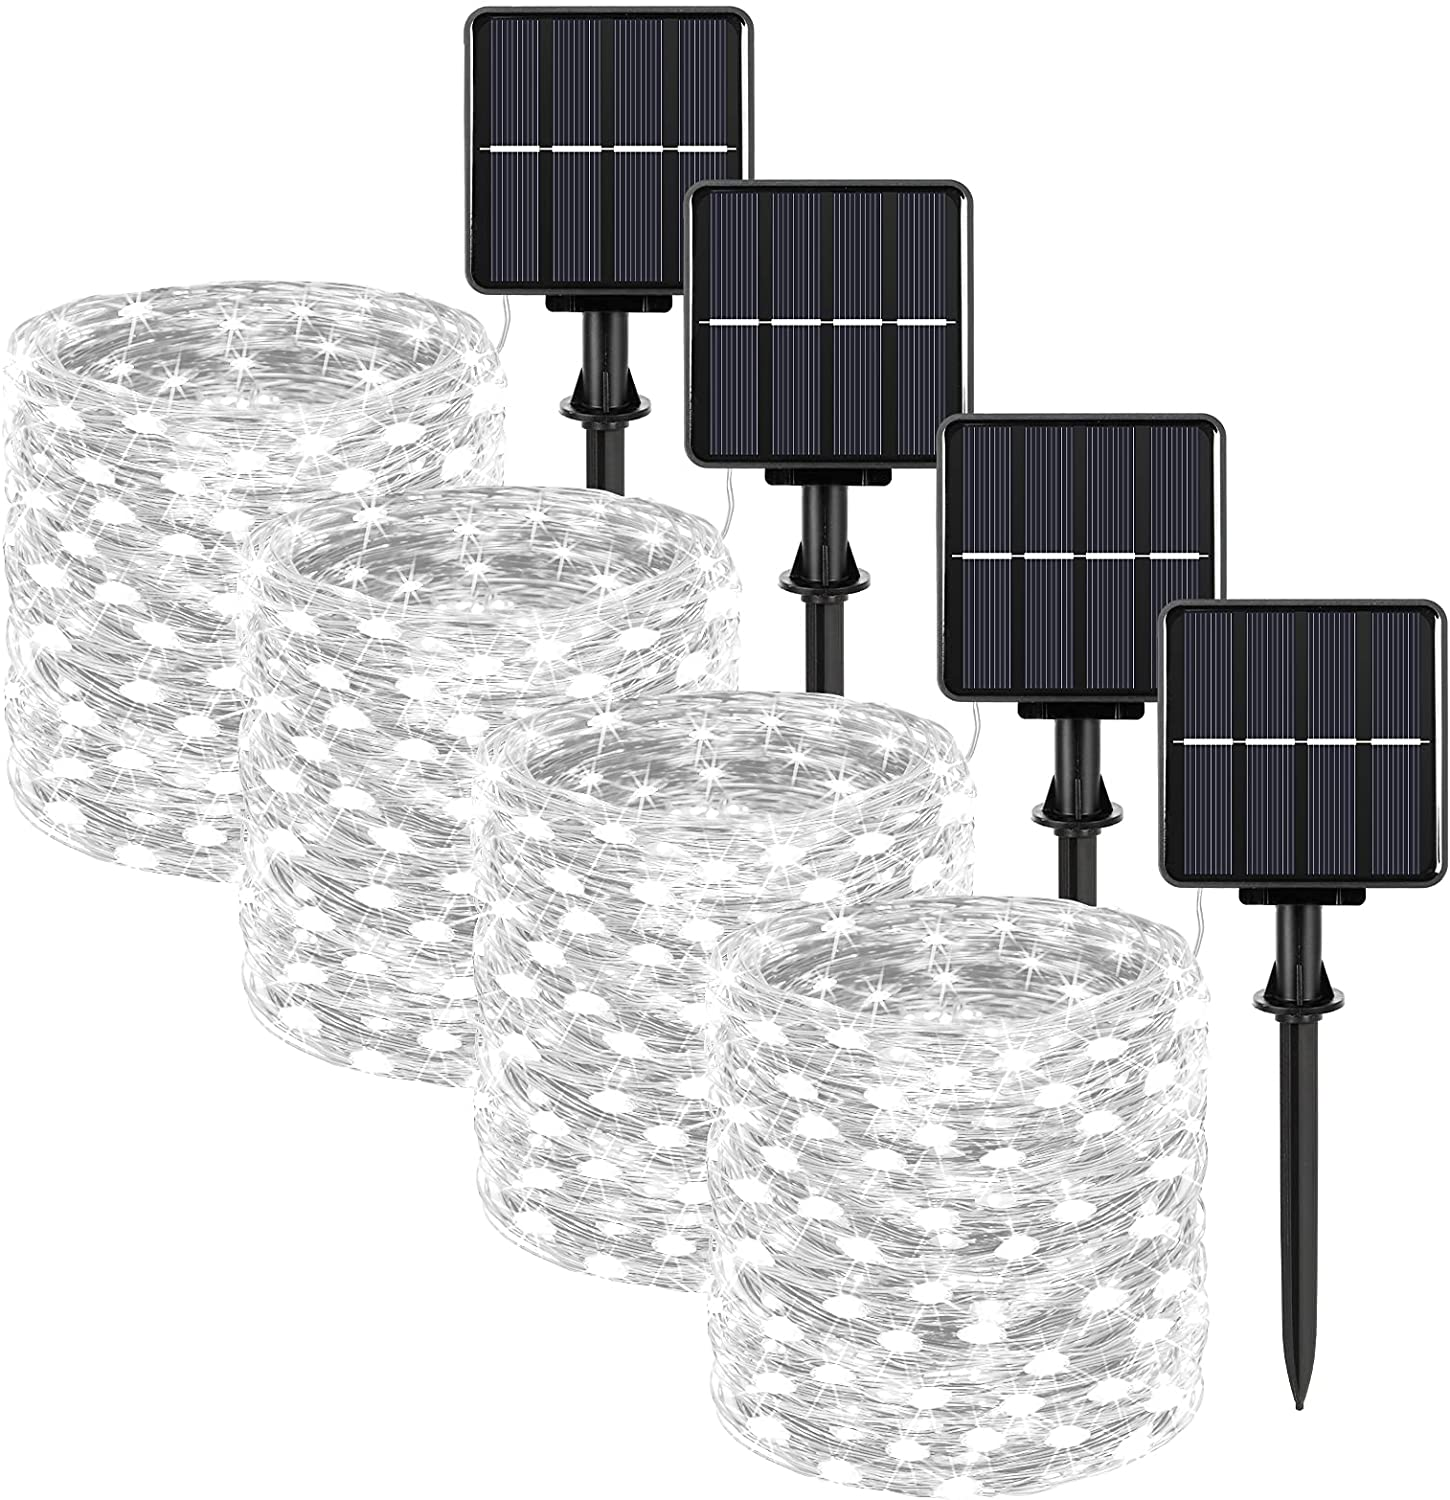 Extra-long 288FT Solar Fairy String Lights, 4-Pack Each 72FT 200 LED Outdoor Twinkle Lights Waterproof 8 Lighting Modes Daylight White Silver Wire Lights for Deck Backyard Tree Garden Fence Pool Party